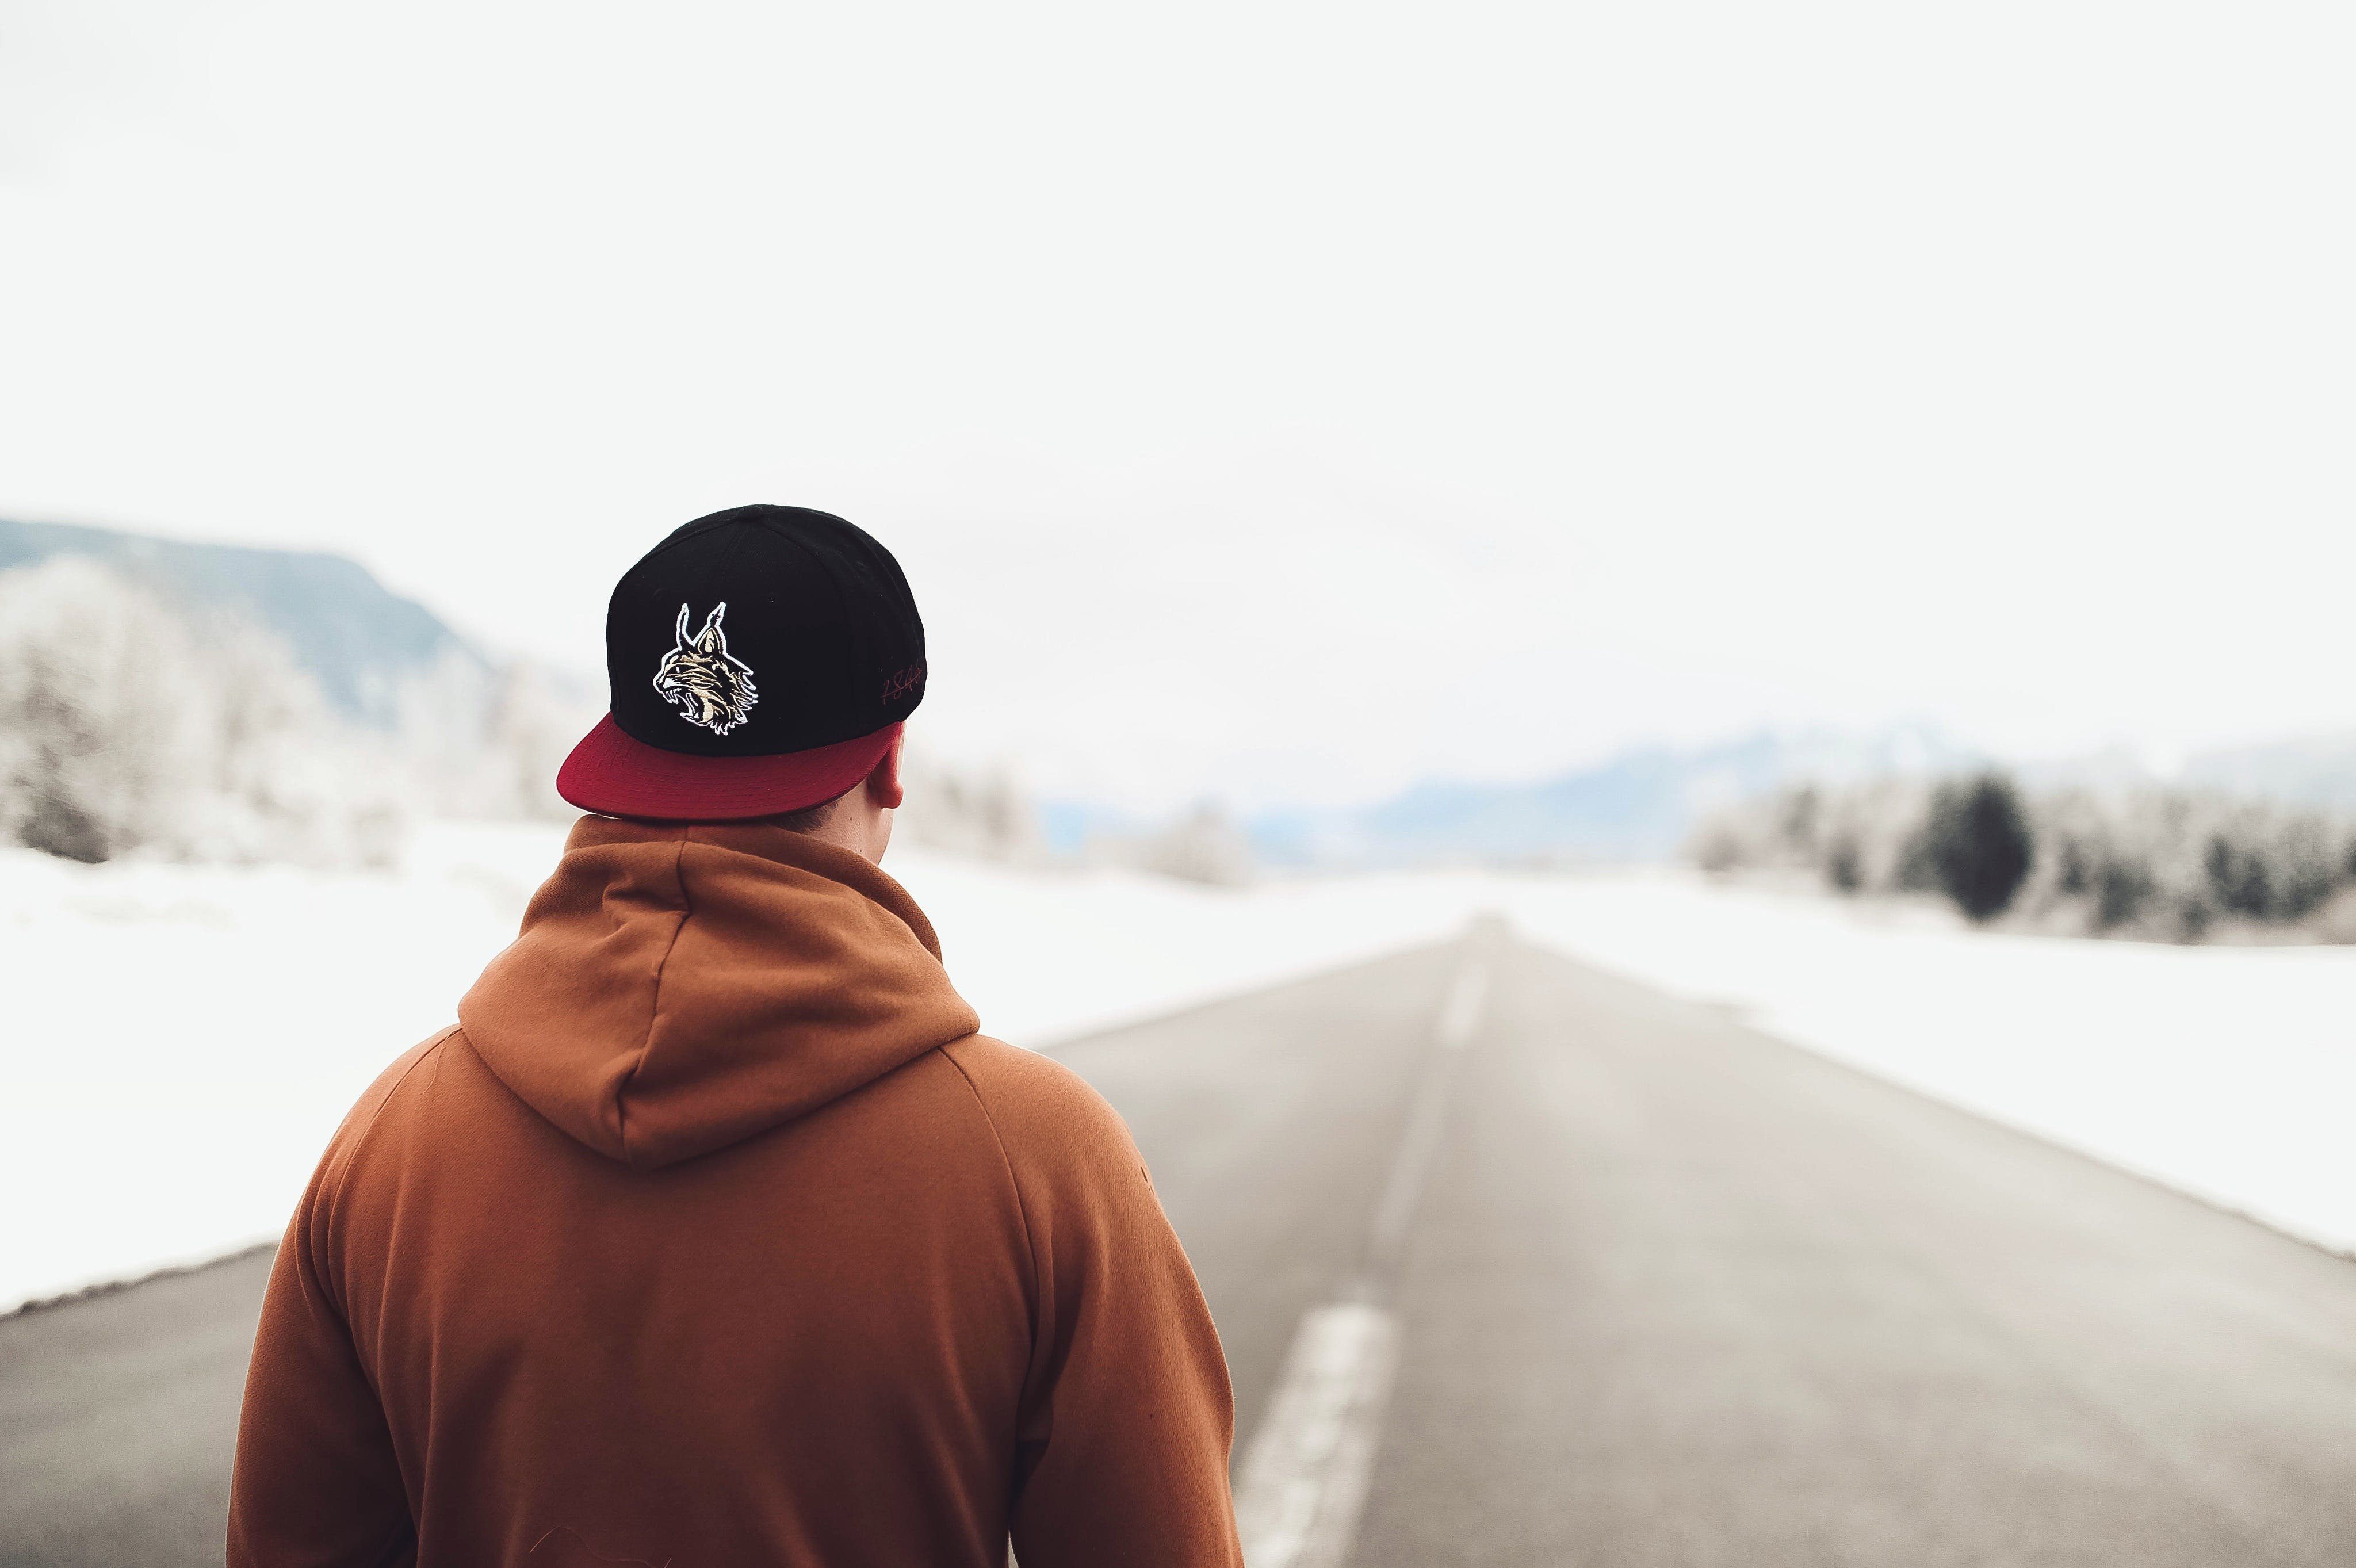 Person in Brown Hoodie and Fitted Cap Walking on Road